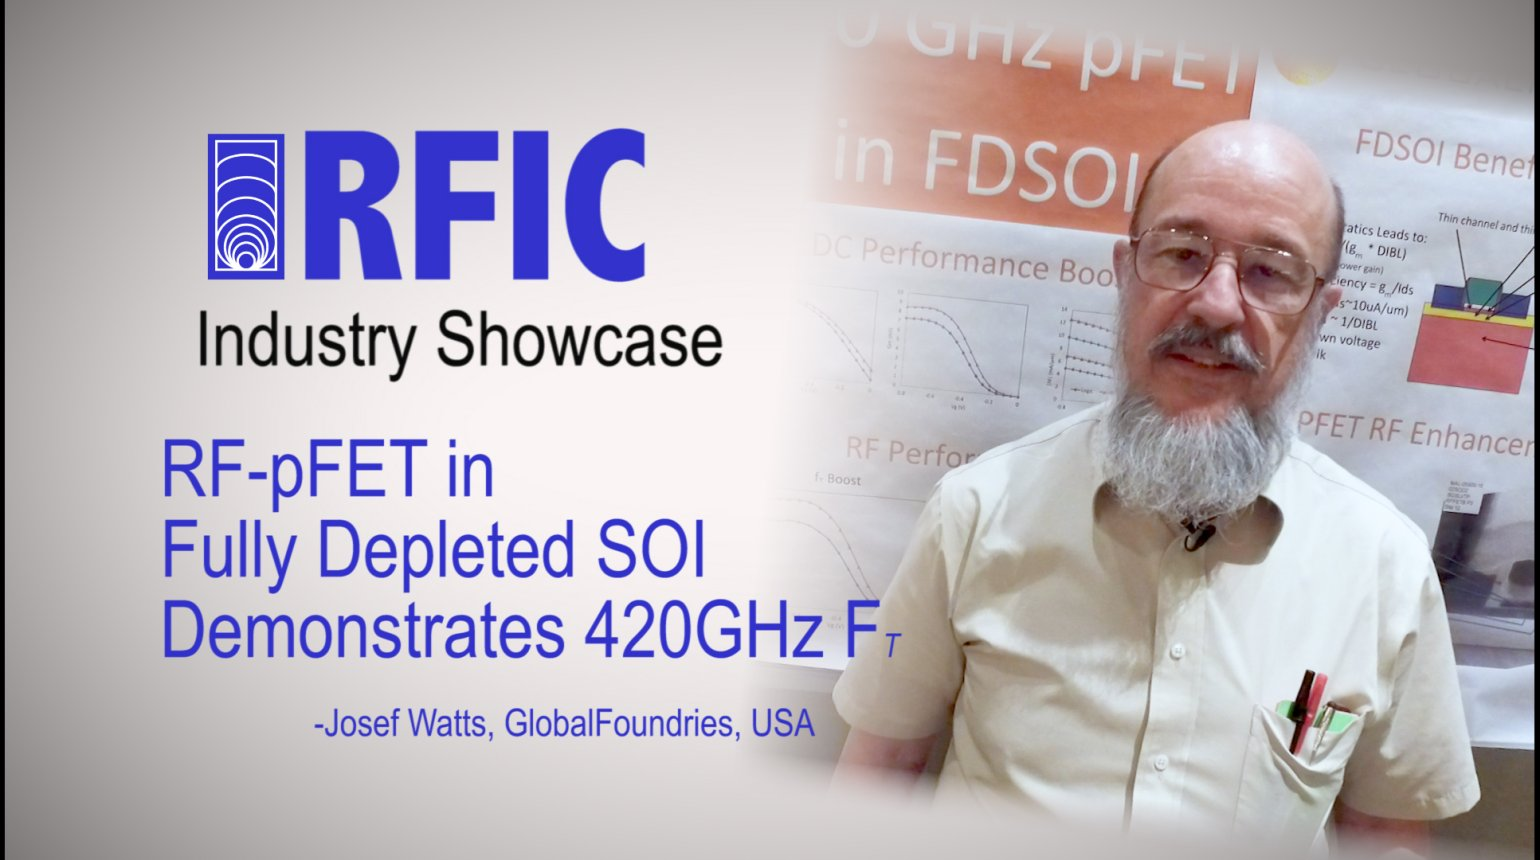 RF-pFET in Fully Depleted SOI Demonstrates 420GHz FT: RFIC Industry Showcase 2017